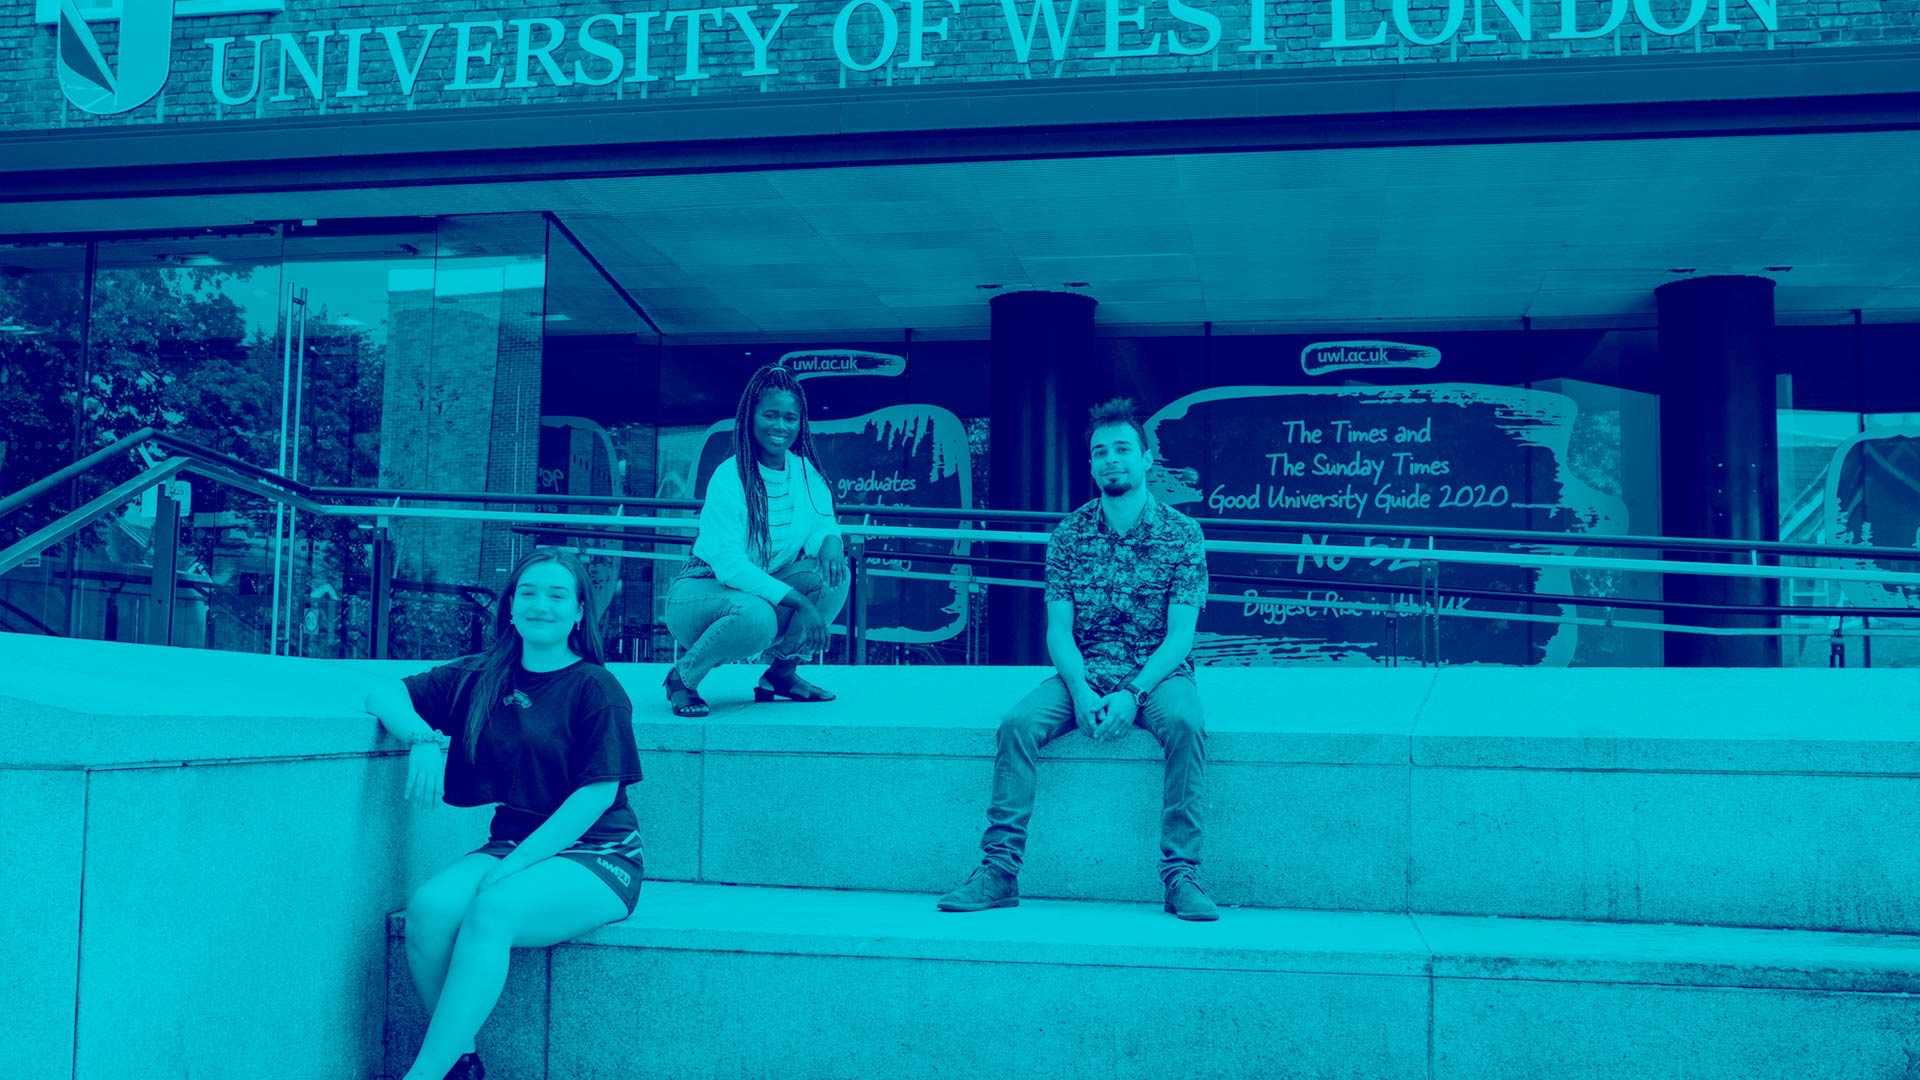 Your student representatives sat on the steps outside the UWL building